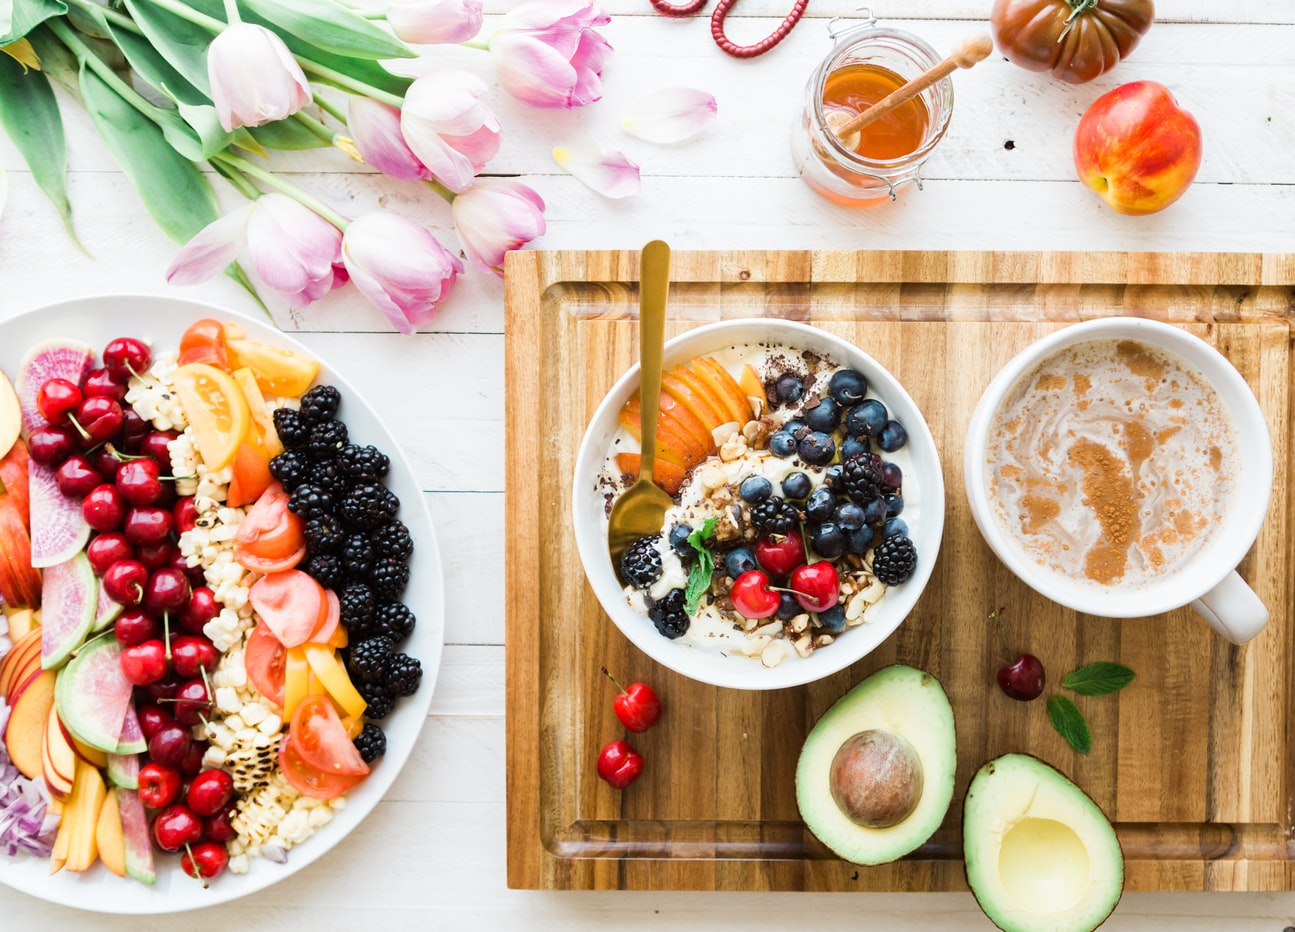 A spread of the best foods for seniors with diabetes including various fruits and vegetables